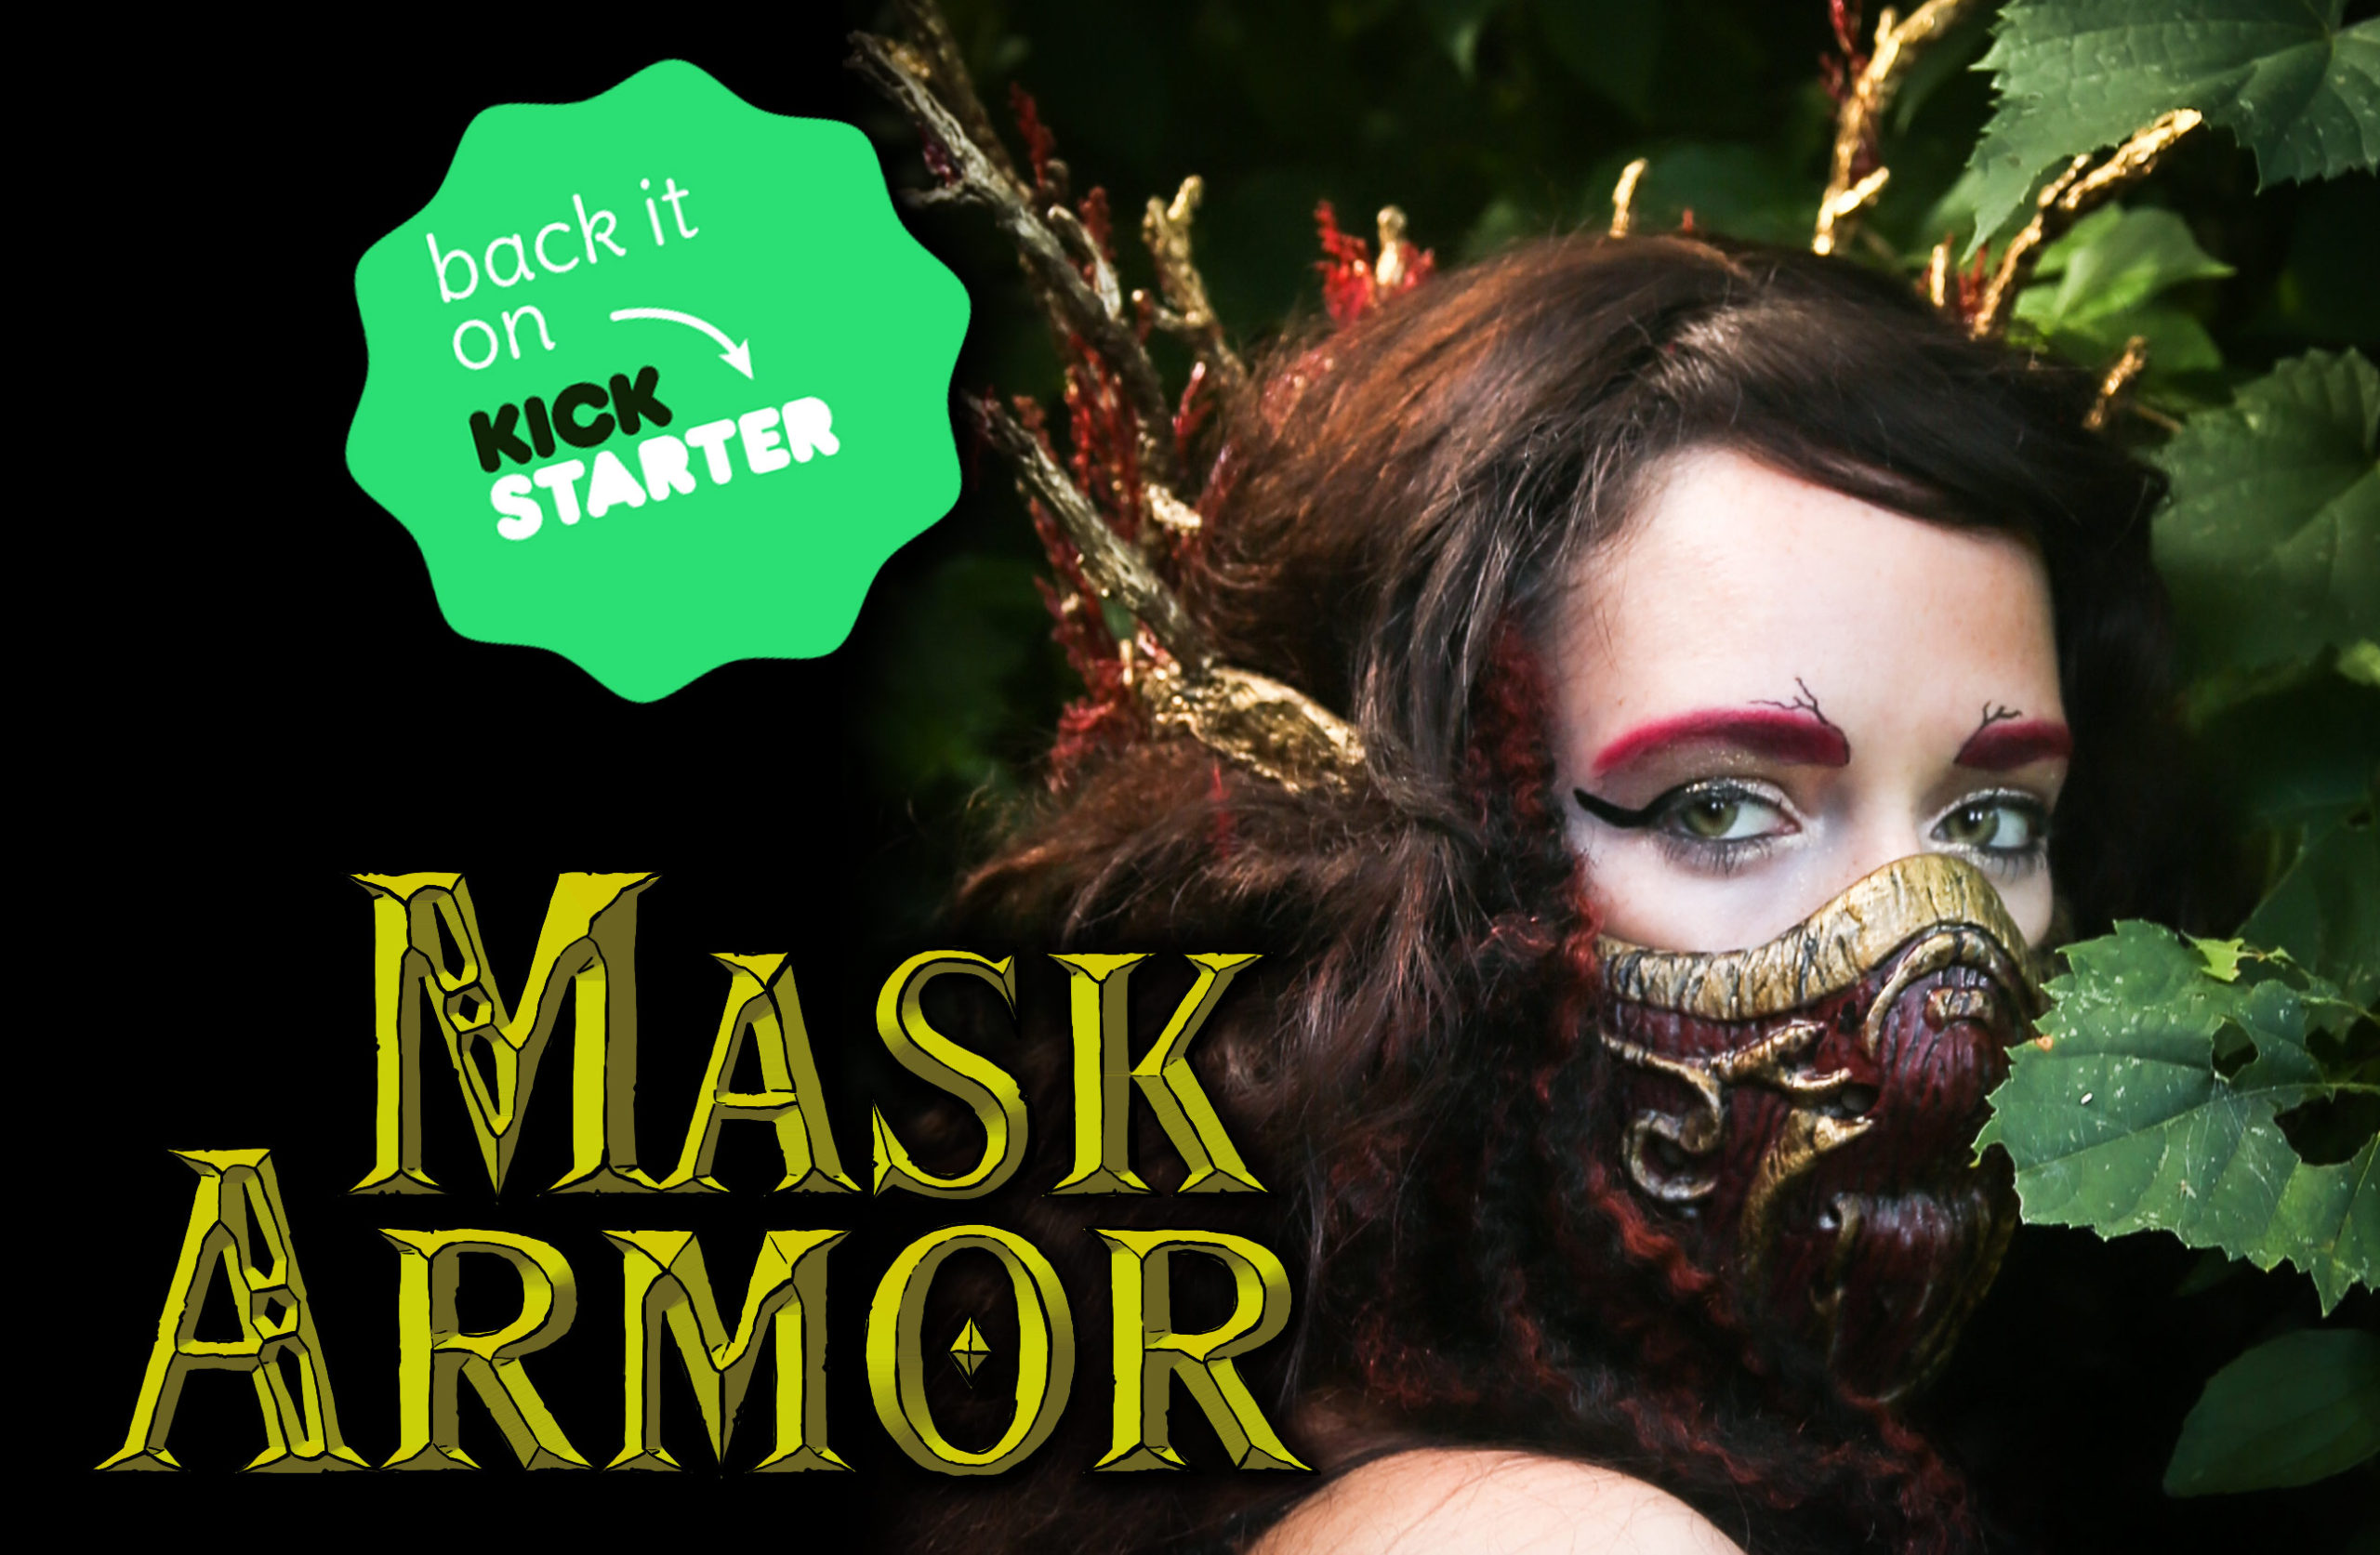 Wood Elf Mask Armor